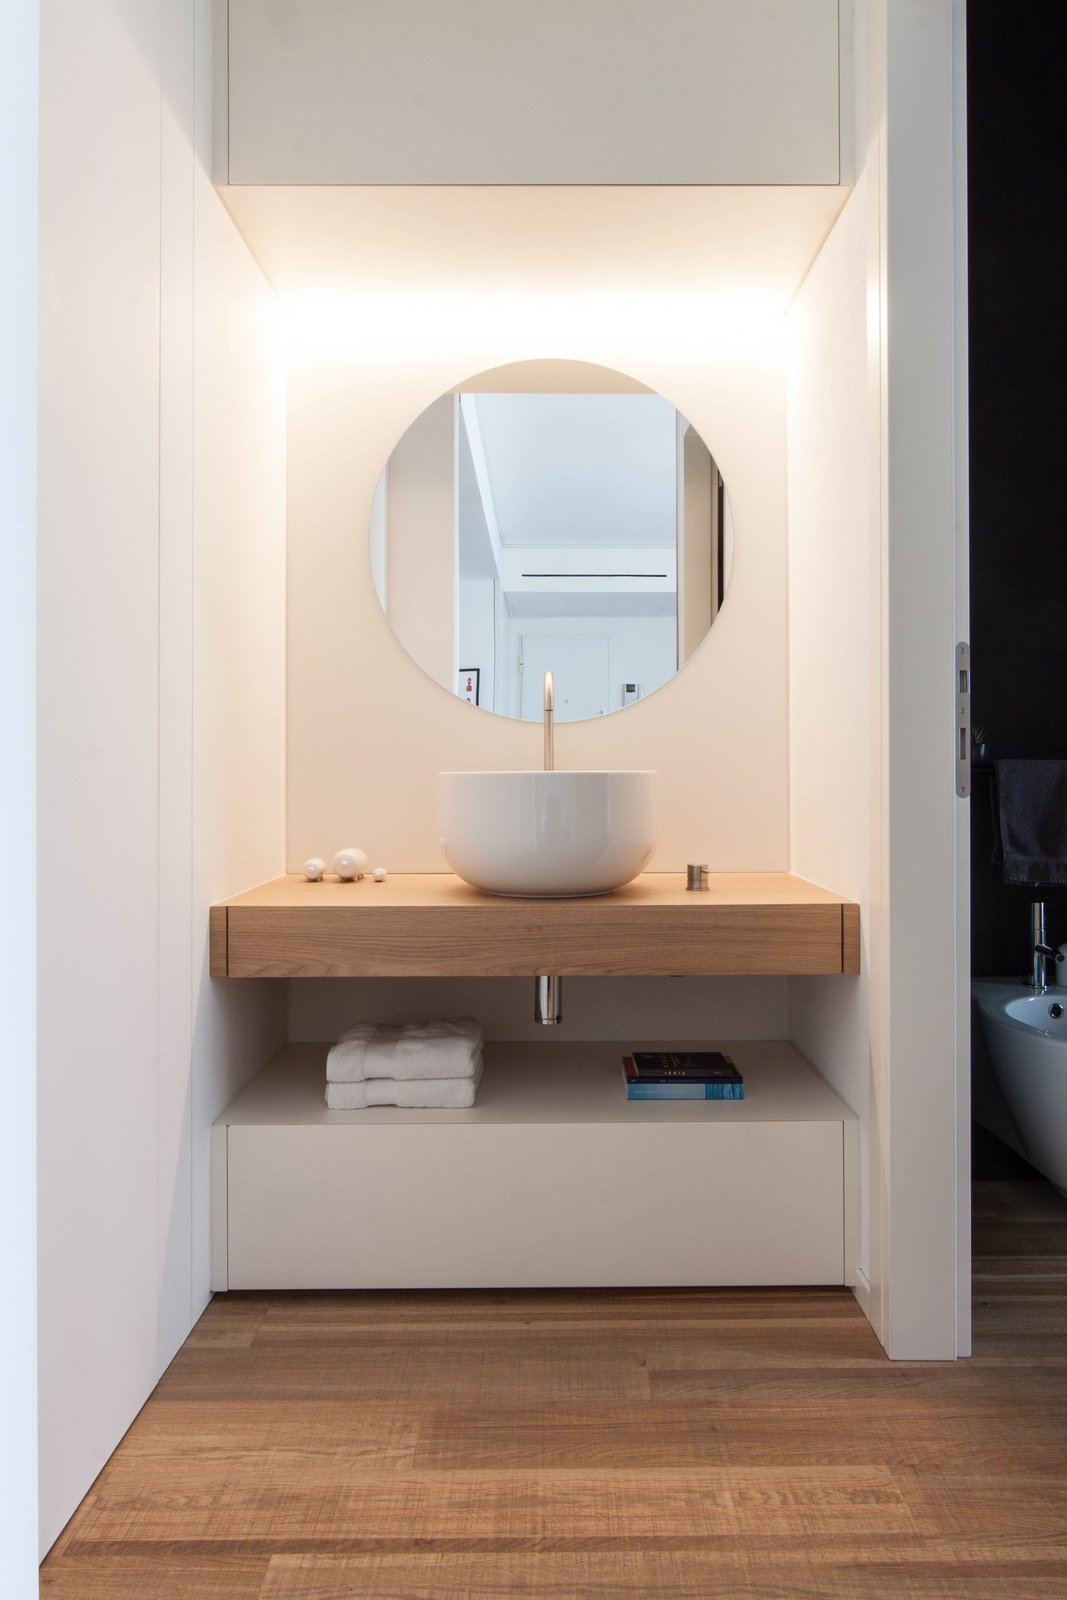 Tagged: Bath Room, Wood Counter, Vessel Sink, Enclosed Shower, Medium Hardwood Floor, Ceiling Lighting, and One Piece Toilet.  Interior LP by Didonè Comacchio